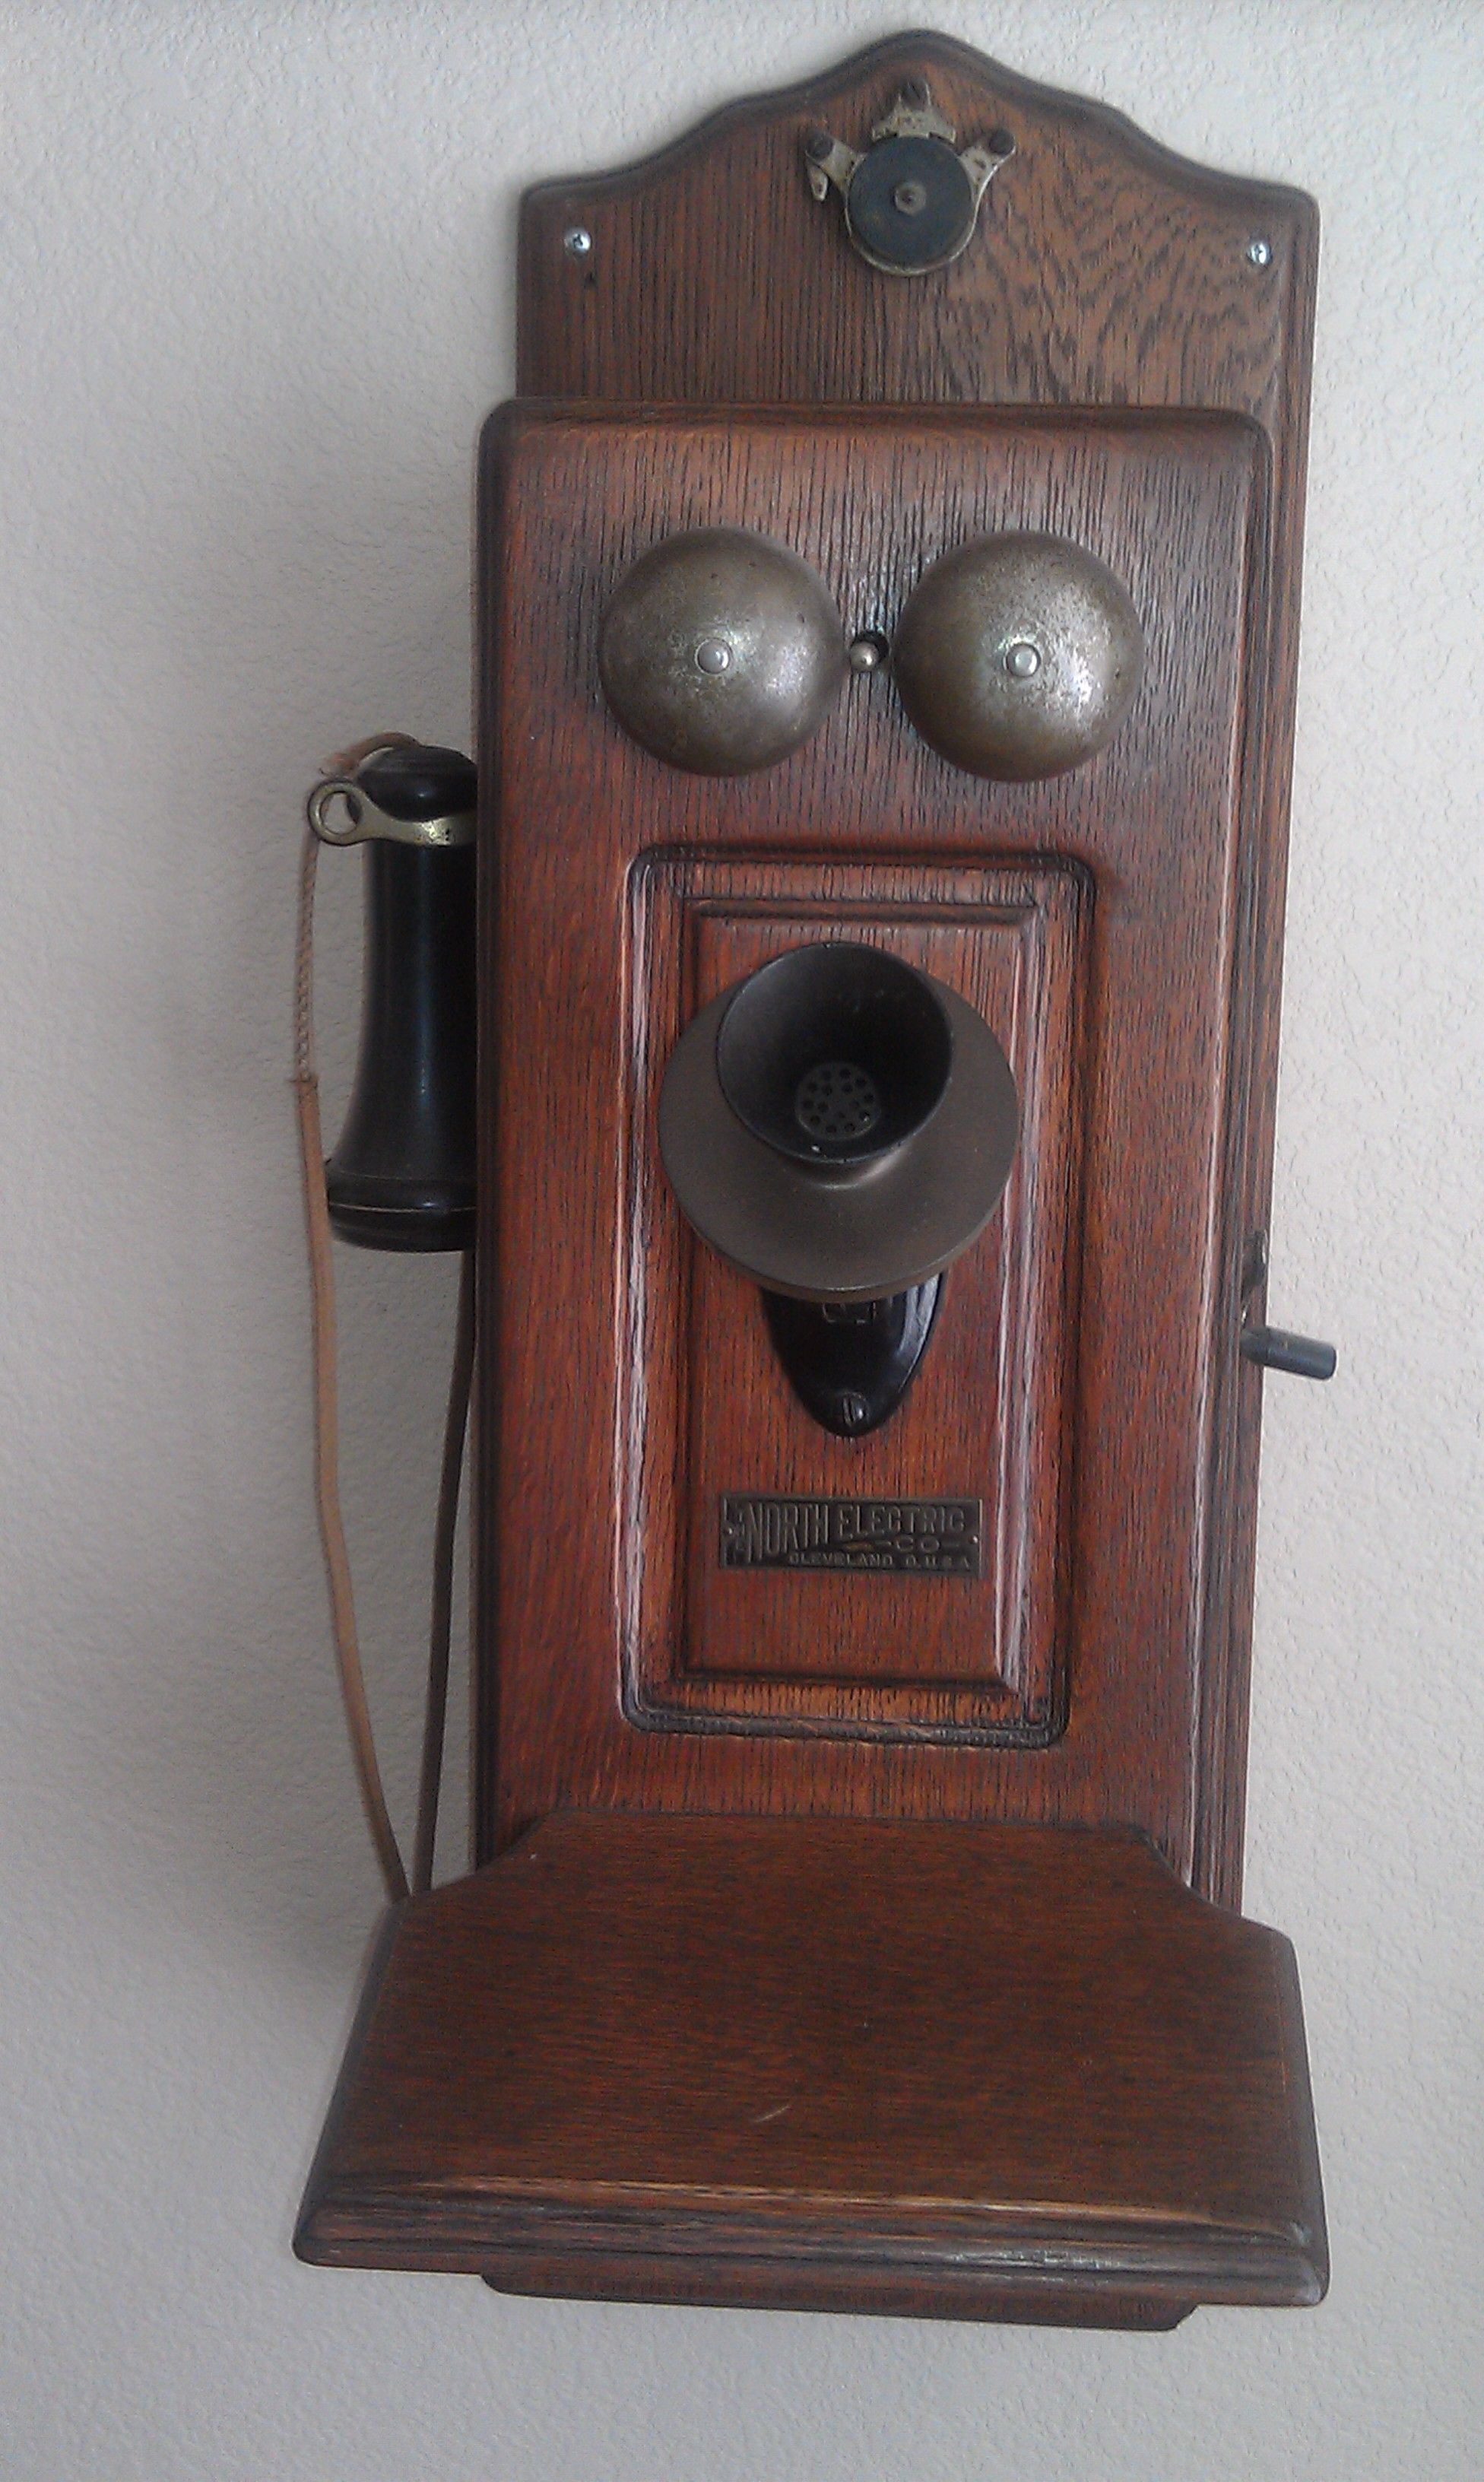 Northern Electric Company Limited Old Phones